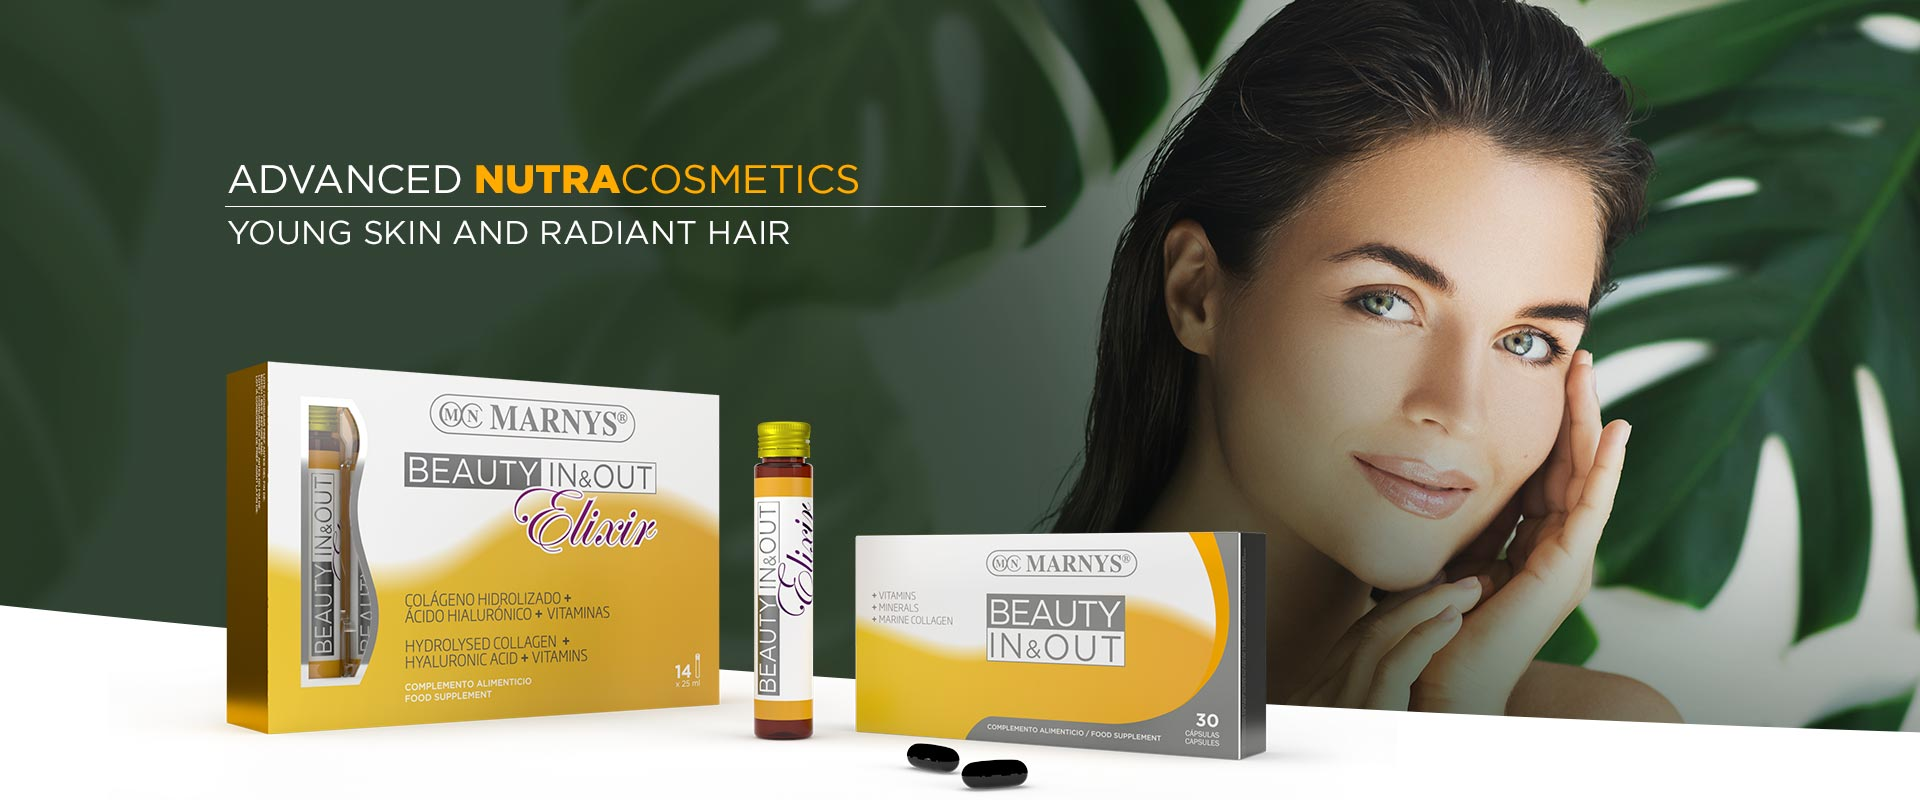 YOUNG SKIN AND RADIANT HAIR   ADVANCED NUTRACOSMETICS